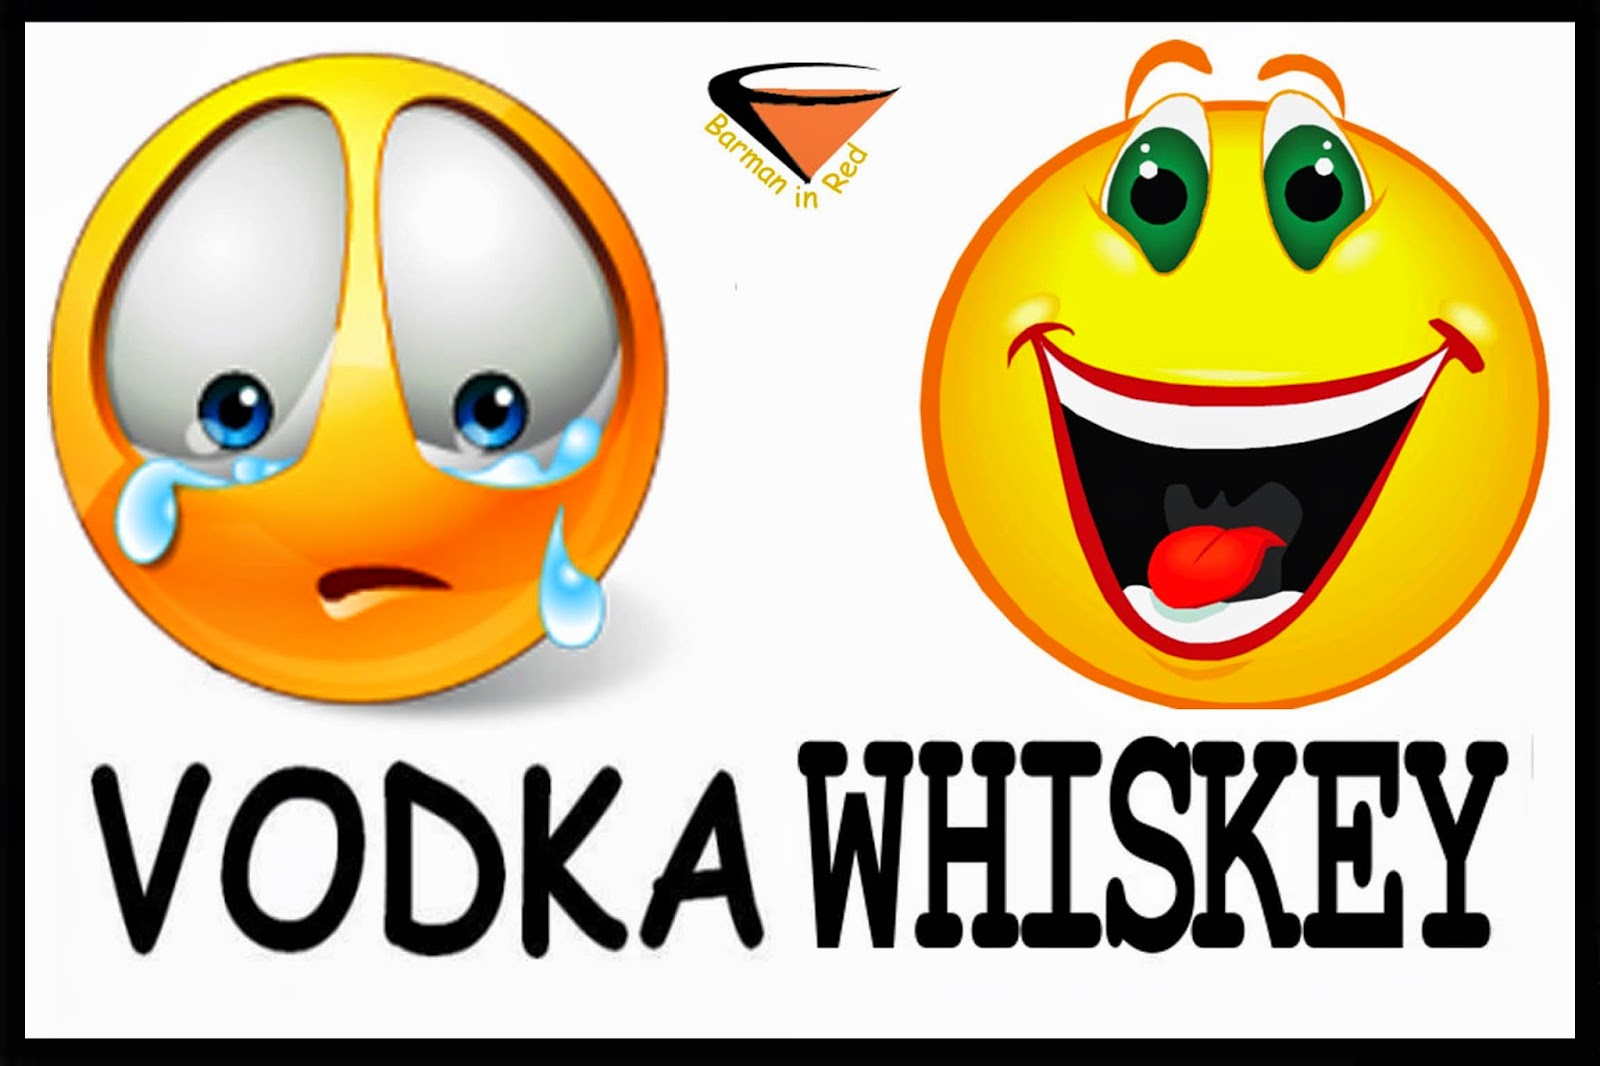 vodka y whisky